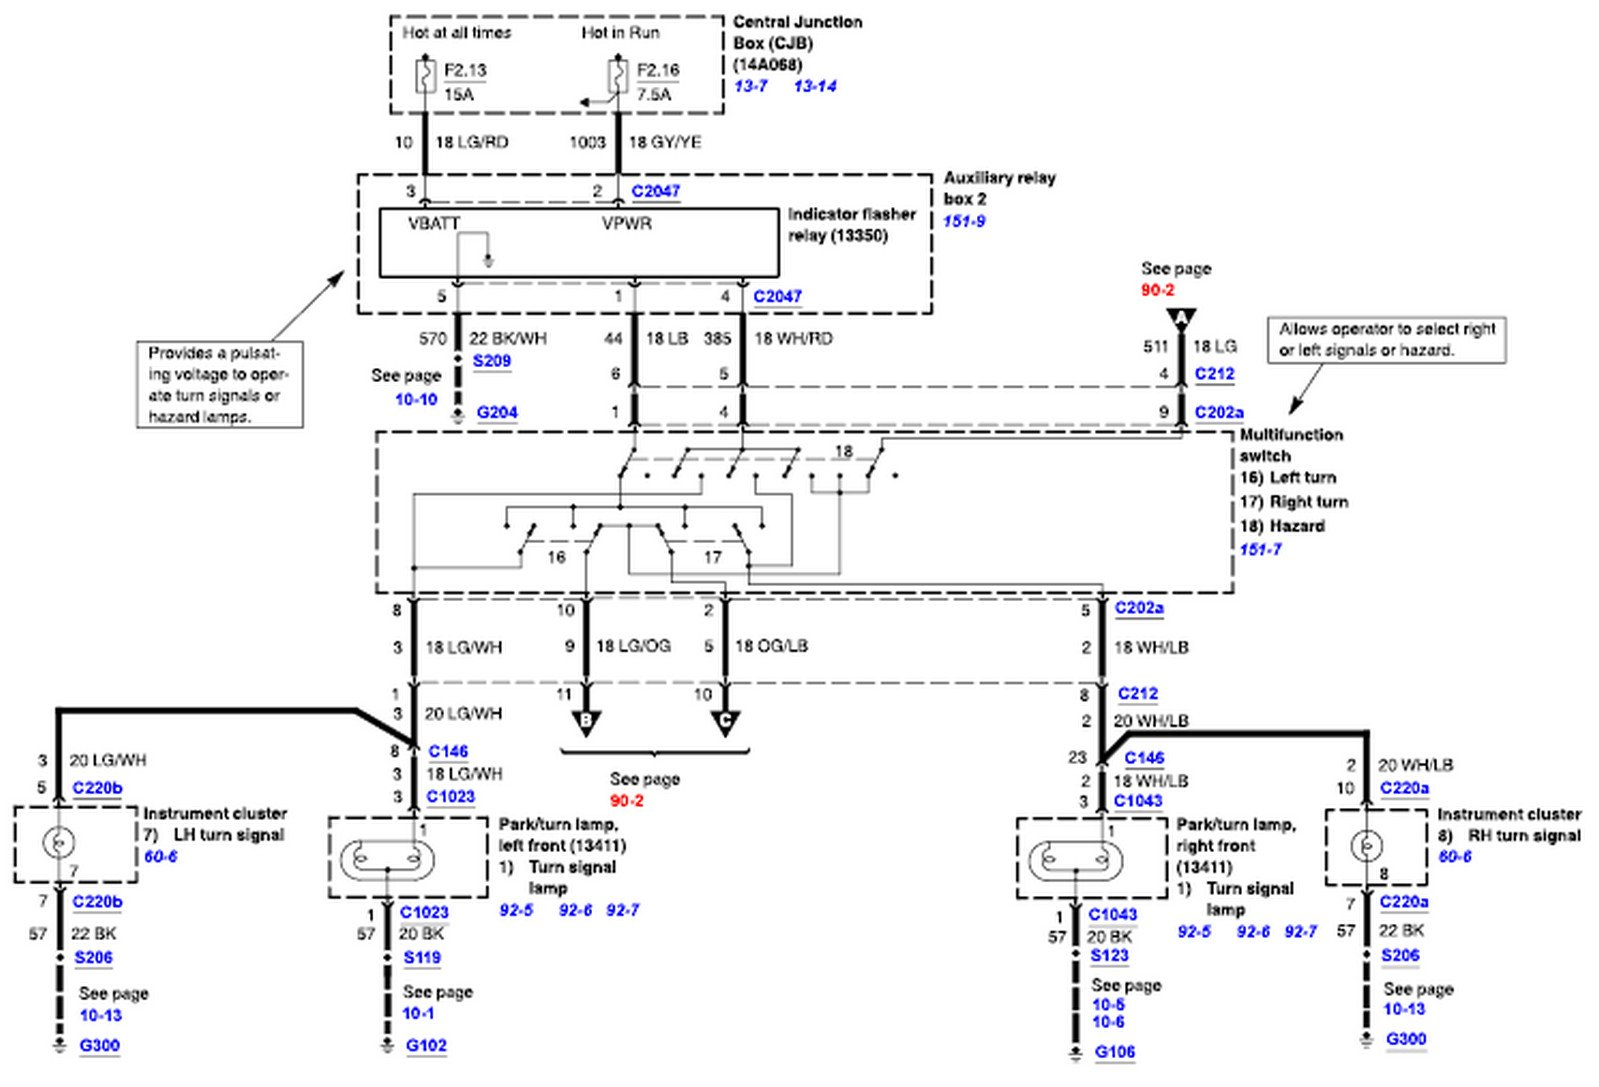 wiring diagram for an 04 pontiac grand am the wiring diagram 2003 pontiac grand am wiring diagram at 92 Grand Am Wiring Harness